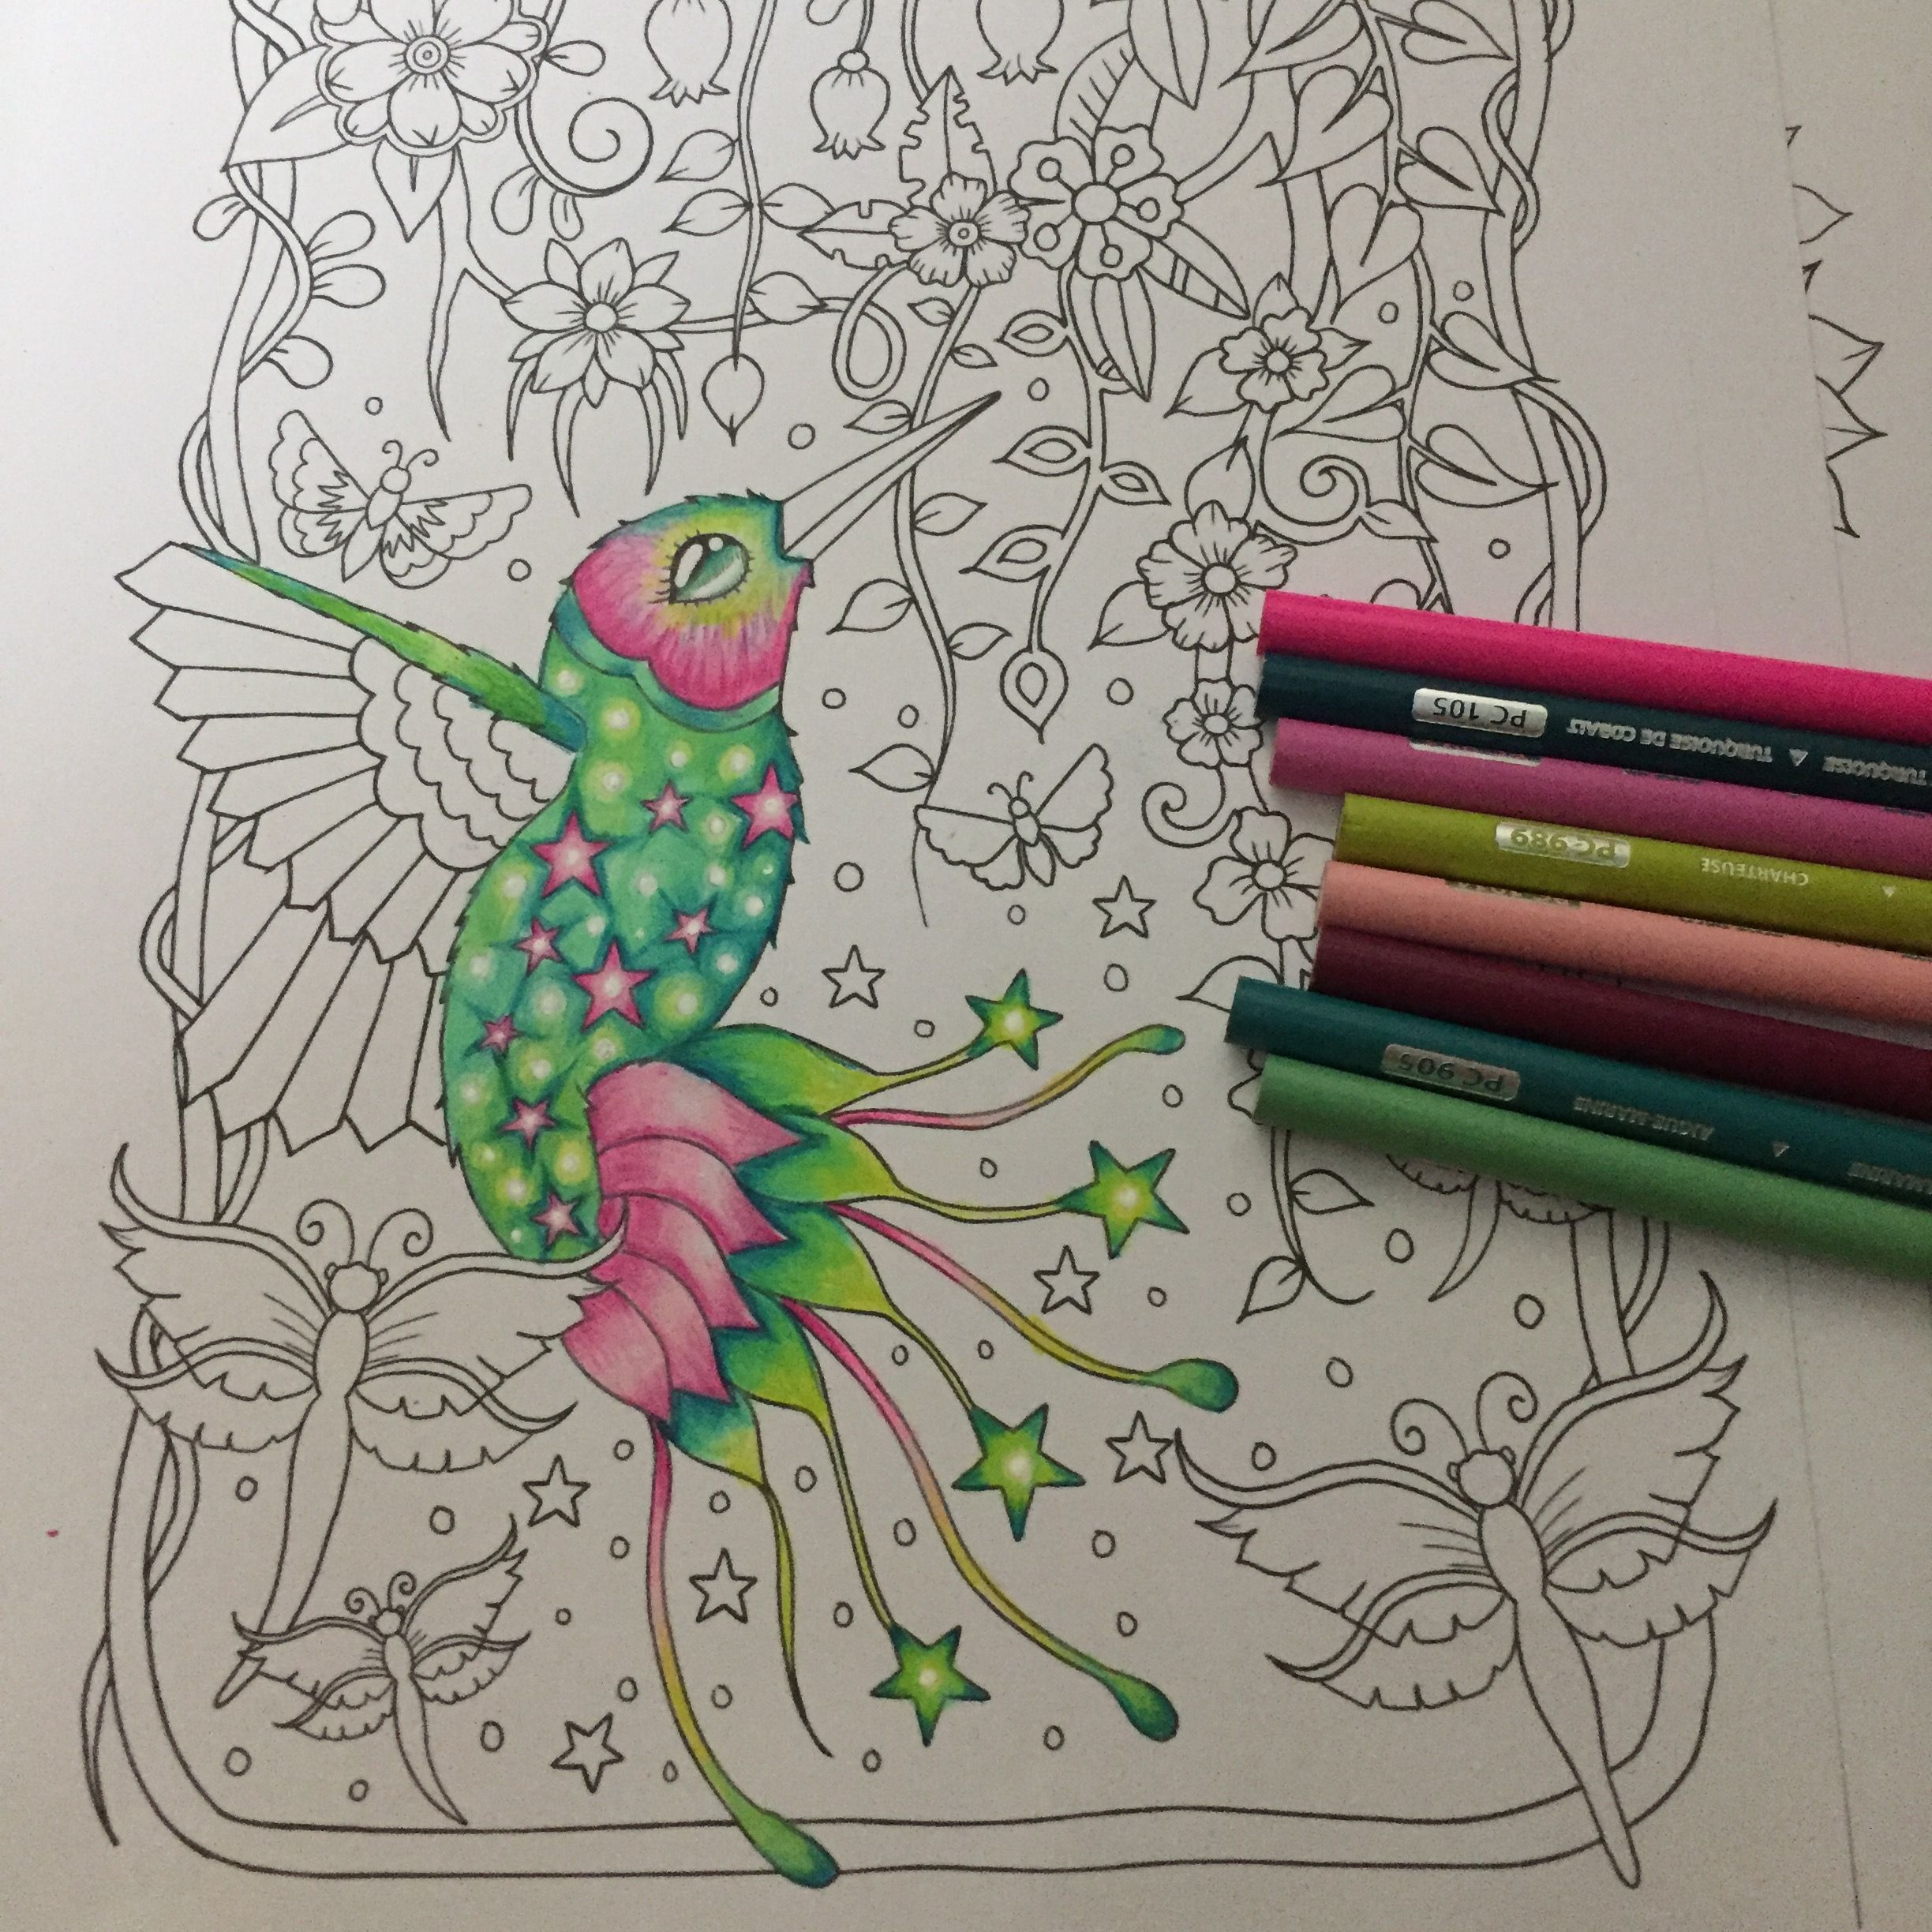 Pin By Sue Montano On Coloring Designs Coloring Books Color Pencil Art Coloring Books